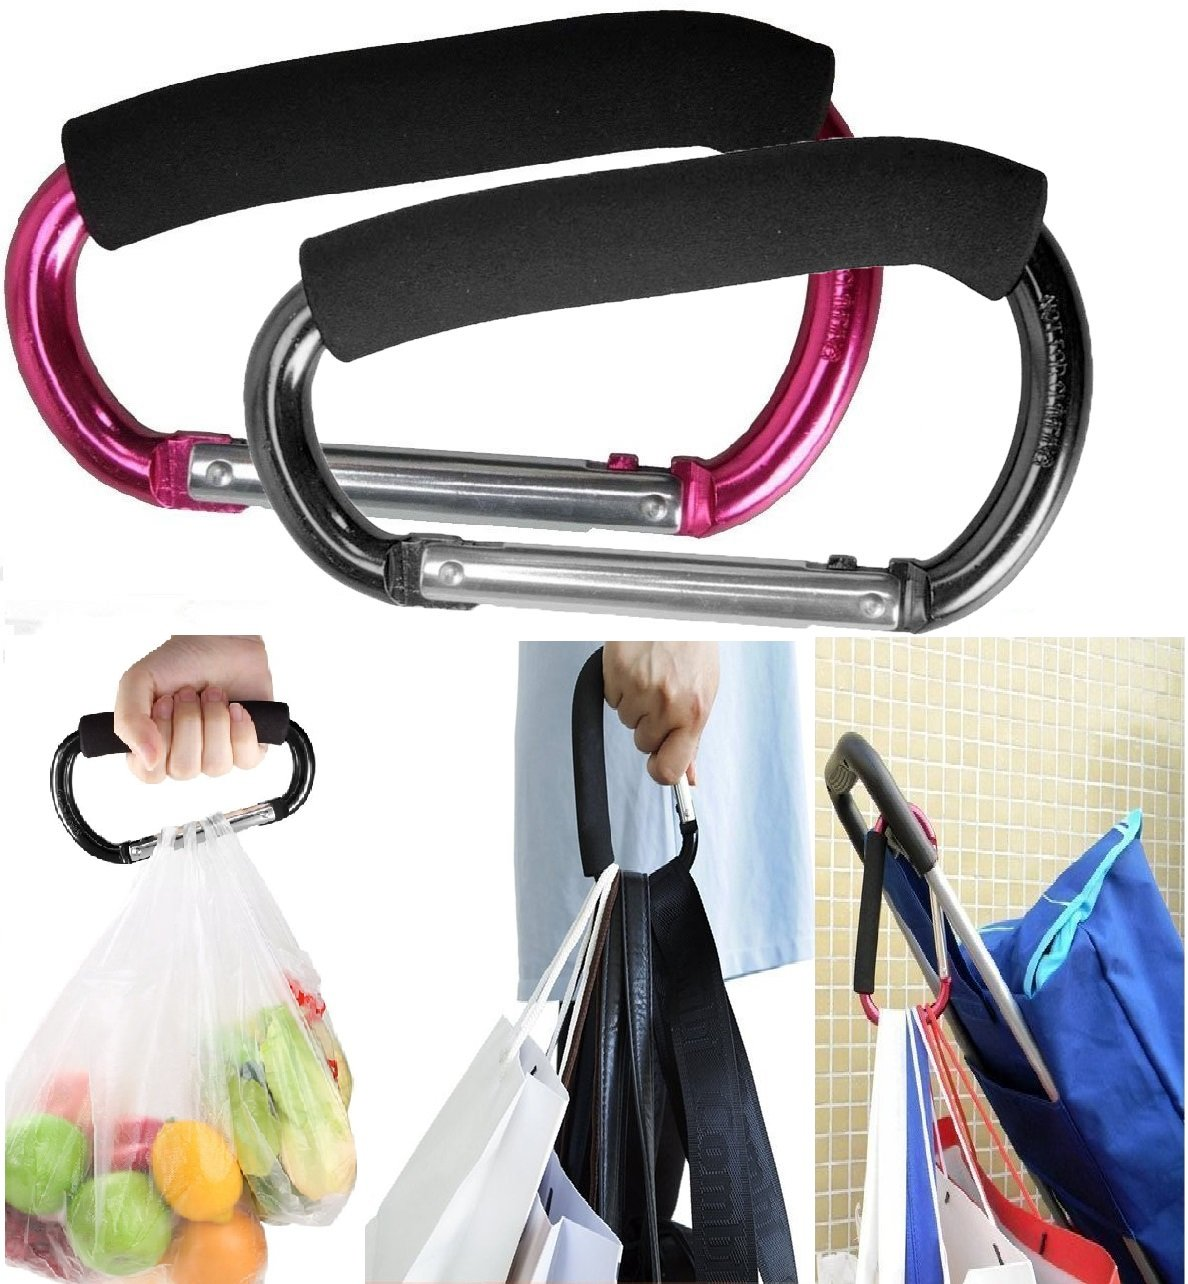 Large Stroller Hooks for Mommy, 2 pcs Carabiner Stroller Hook Organizer for Hanging Purses, Diaper Bag, Shopping Bags. Clip Fits Single/Twin Travel Systems, Car Seats (Black+Rose)